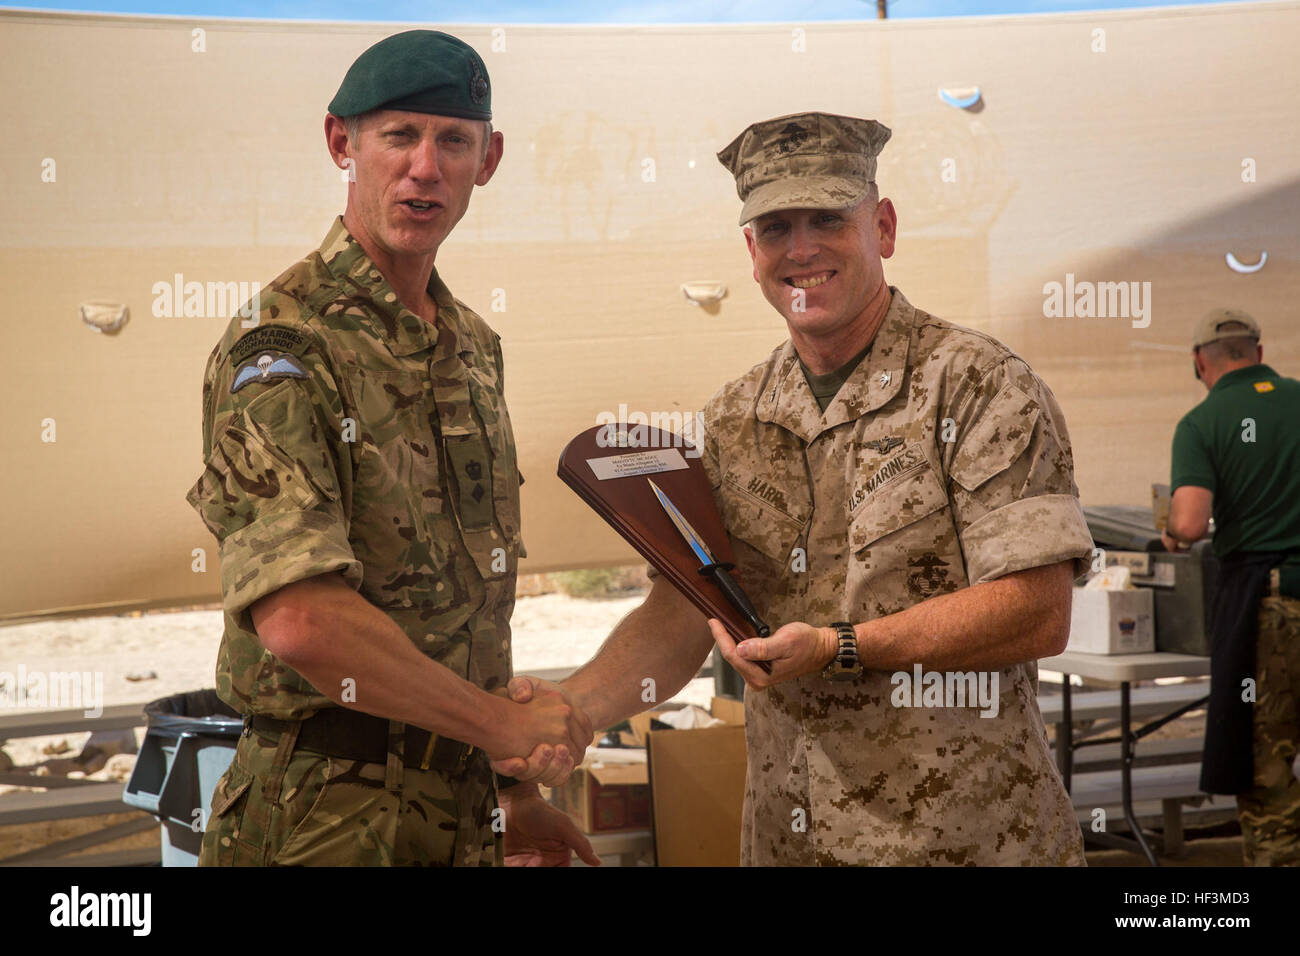 British royal marine lt col richard cantrill commanding officer stock photo royalty free - Royal marines recruitment office ...